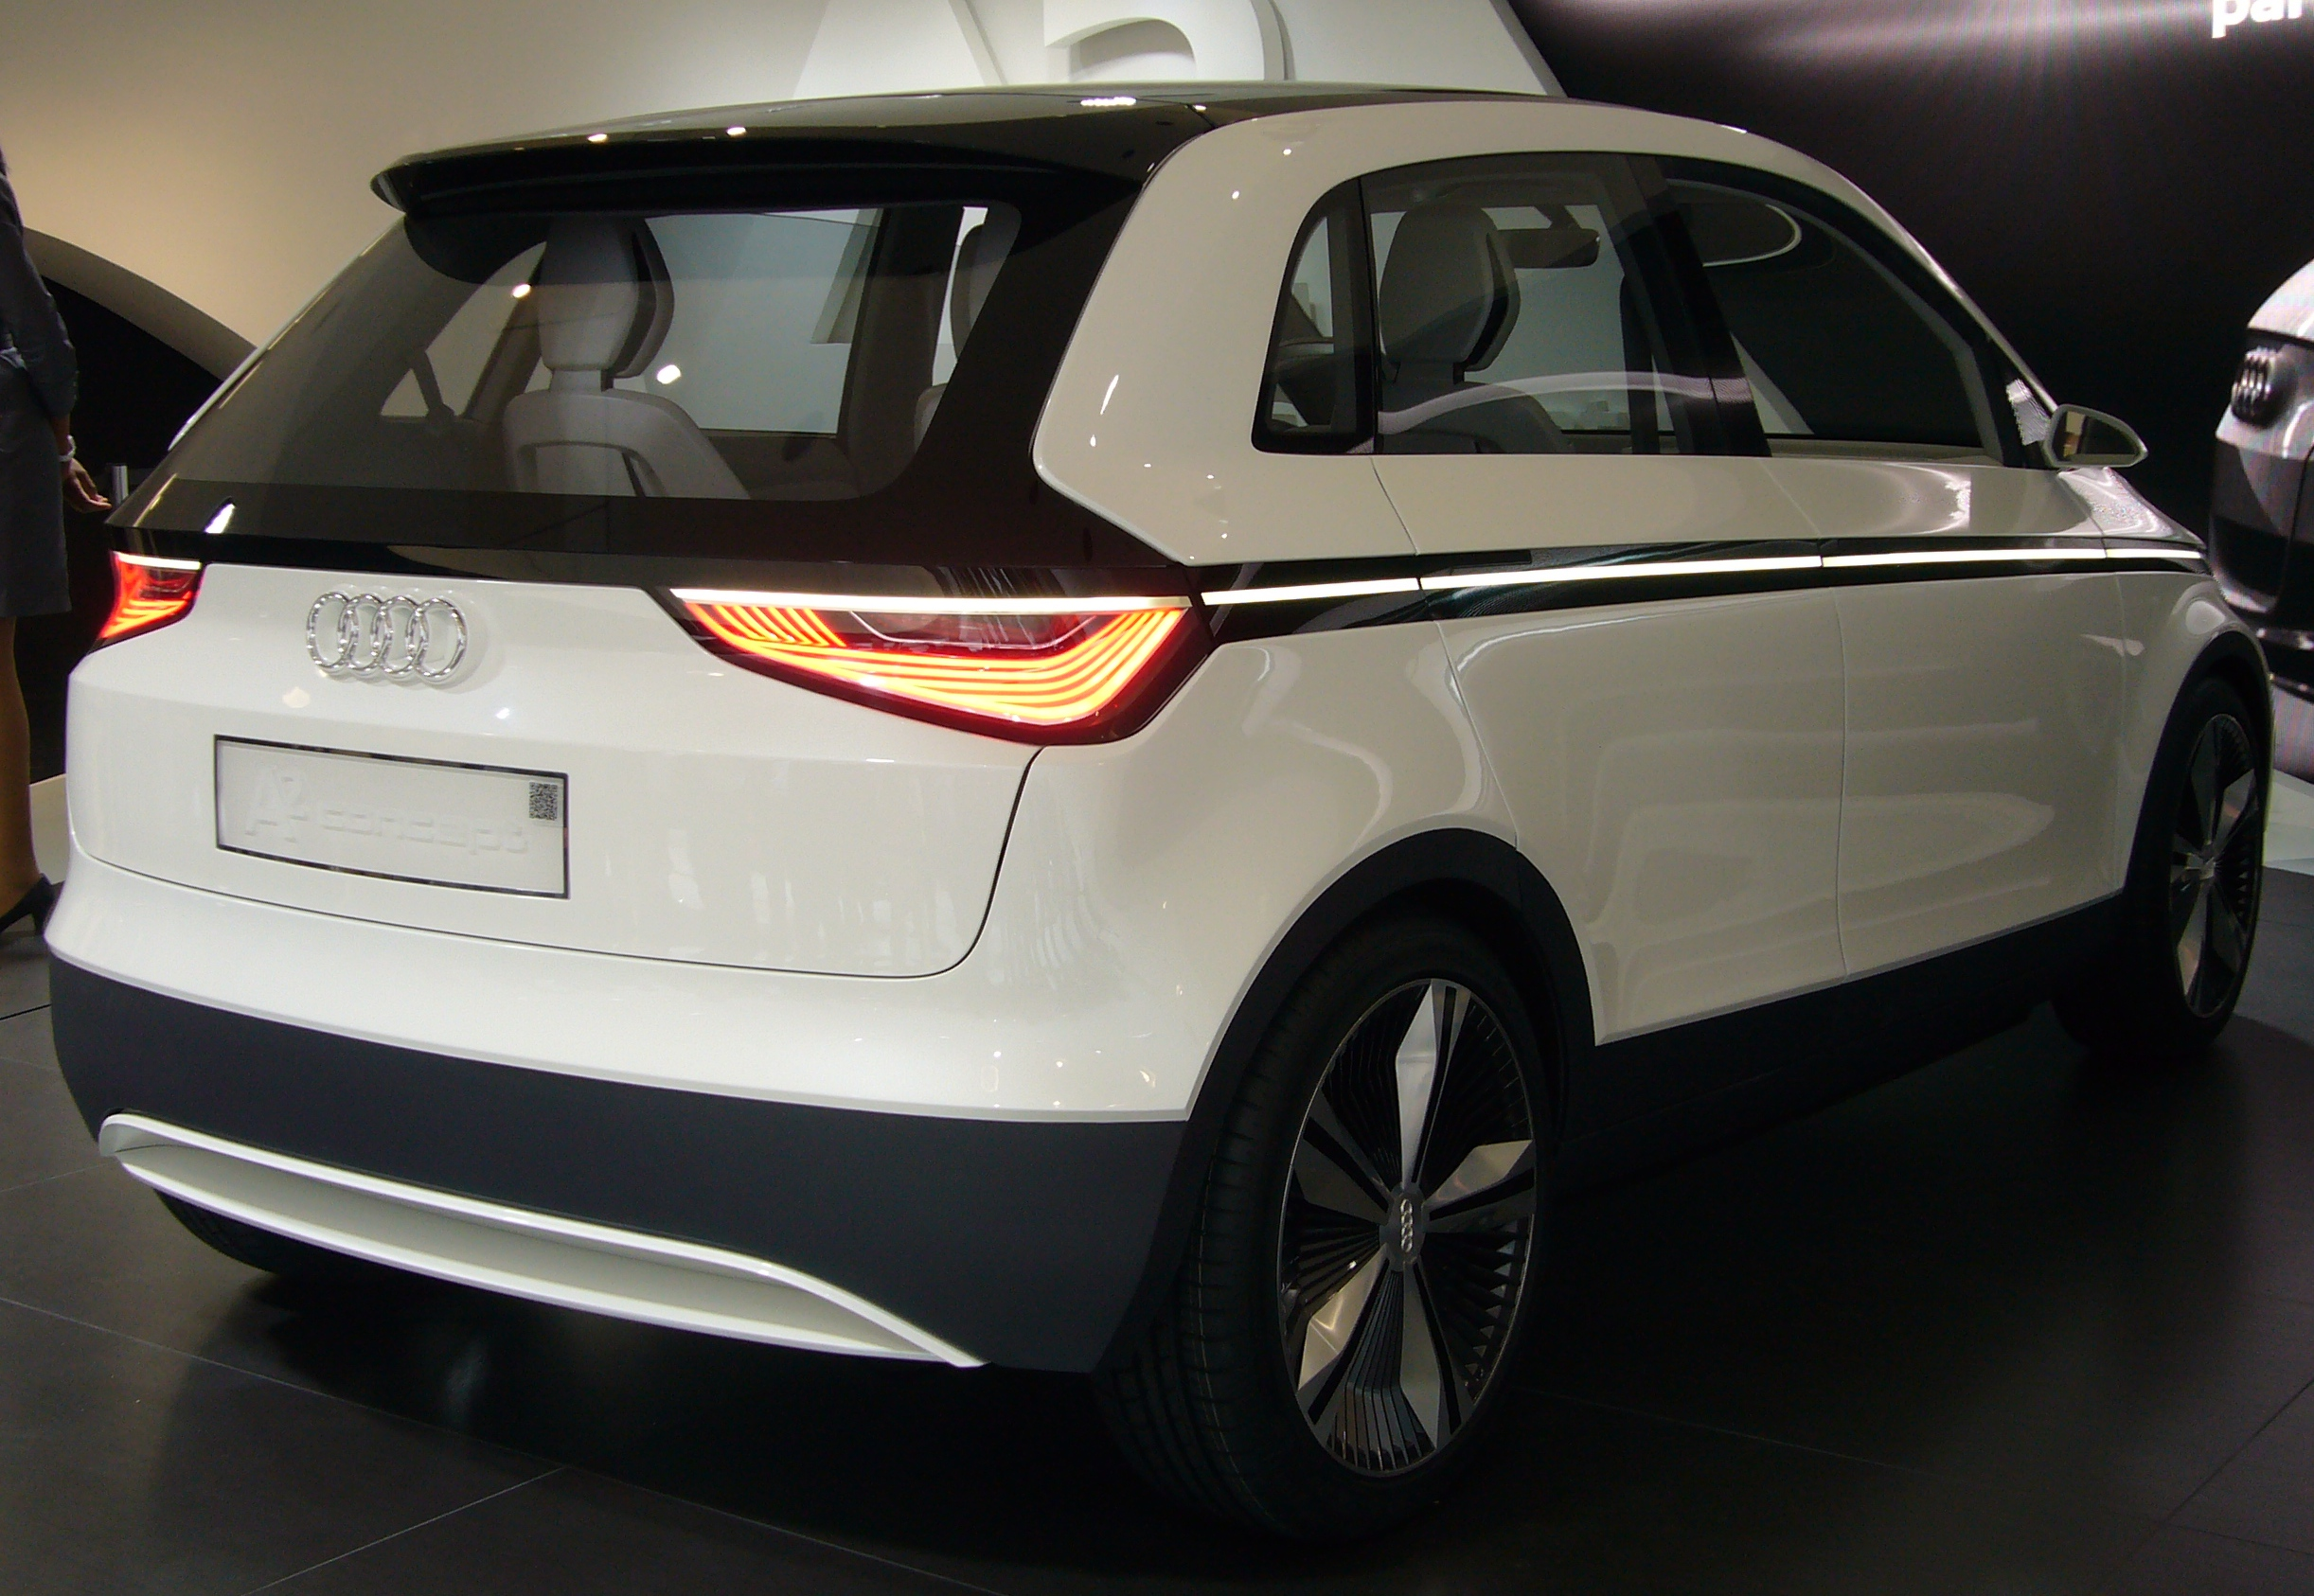 2444x1686 > Audi A2 Concept Wallpapers